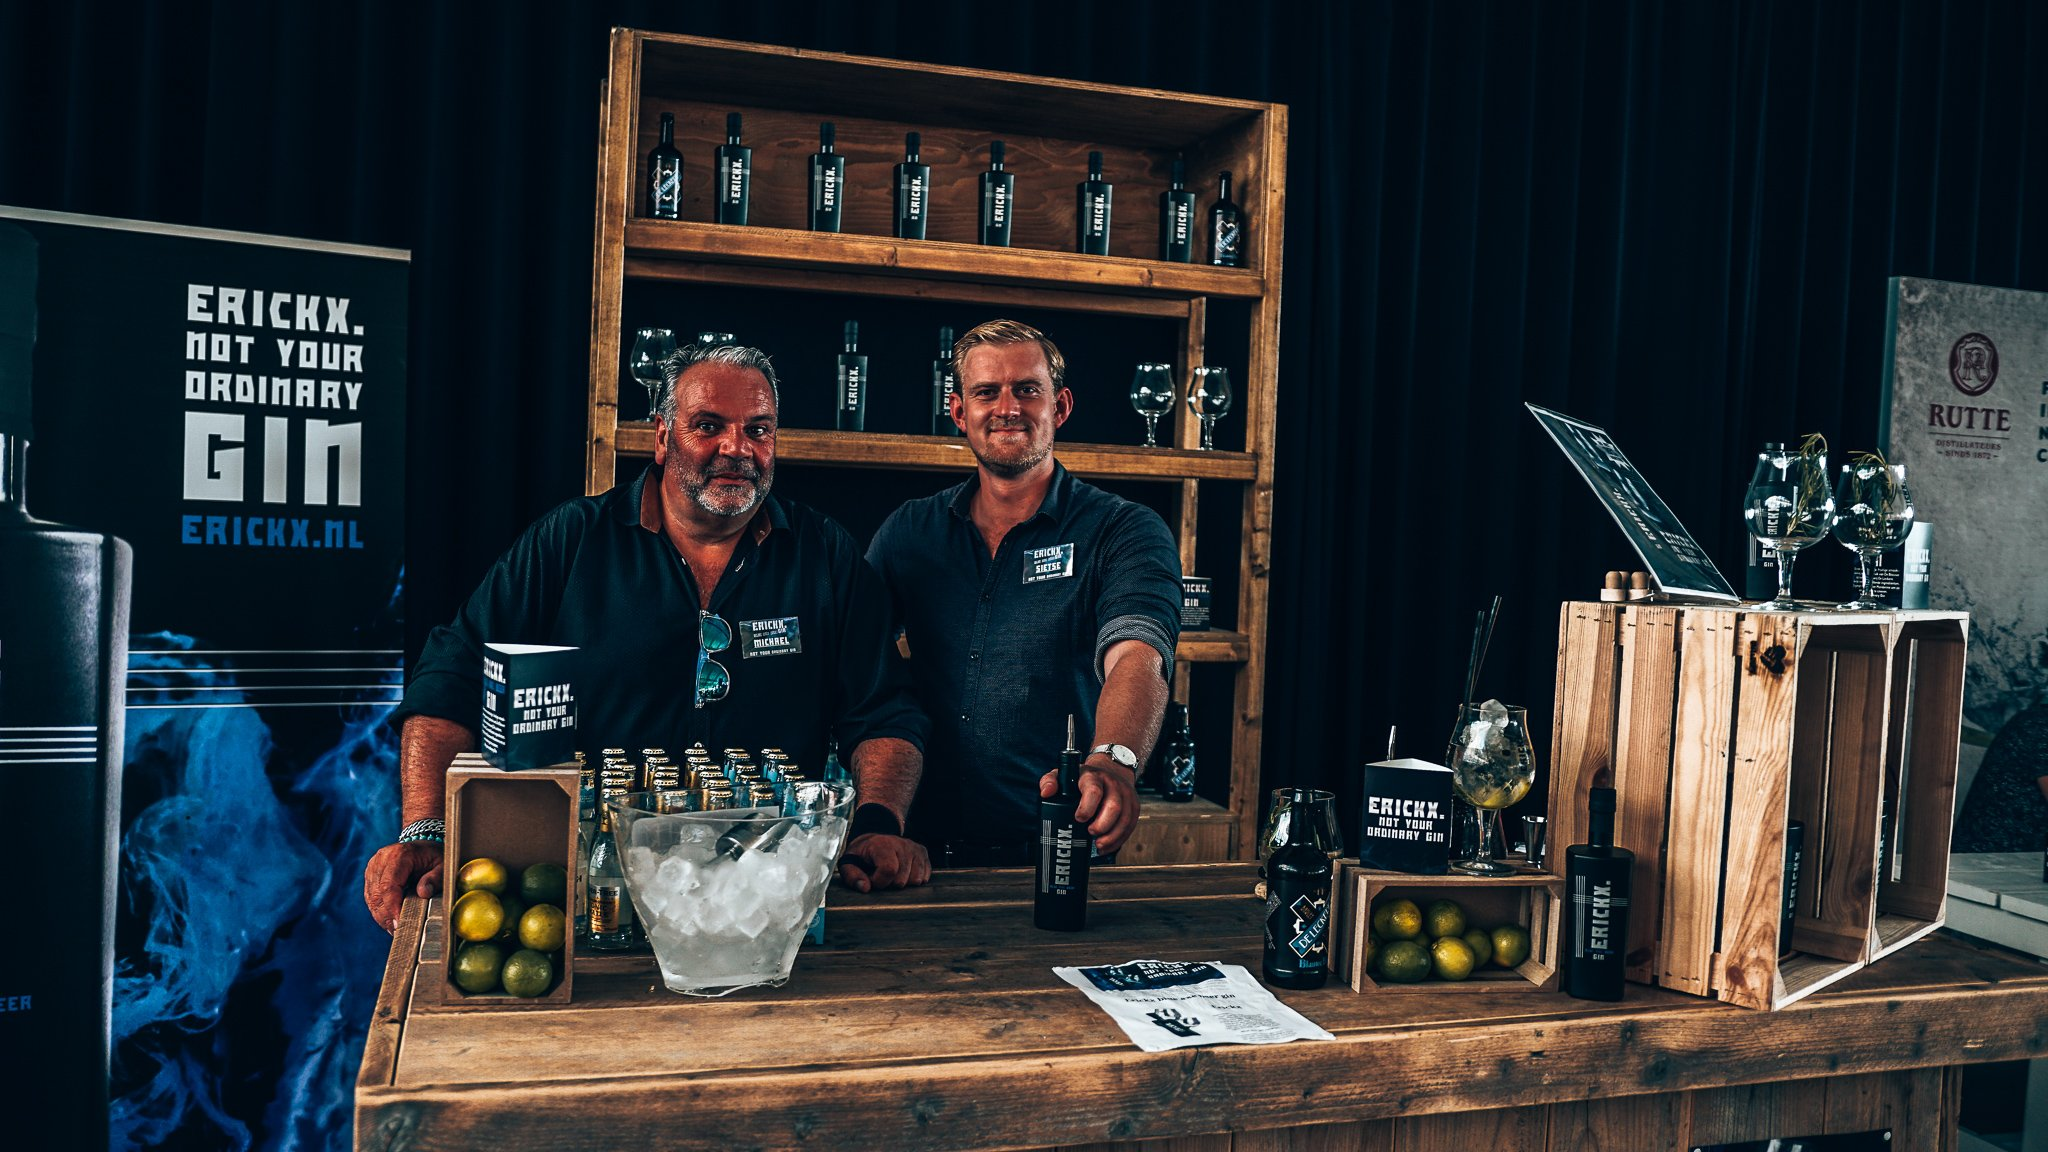 Erickx Gin, Ginfestival Rotterdam, Alles over gin.